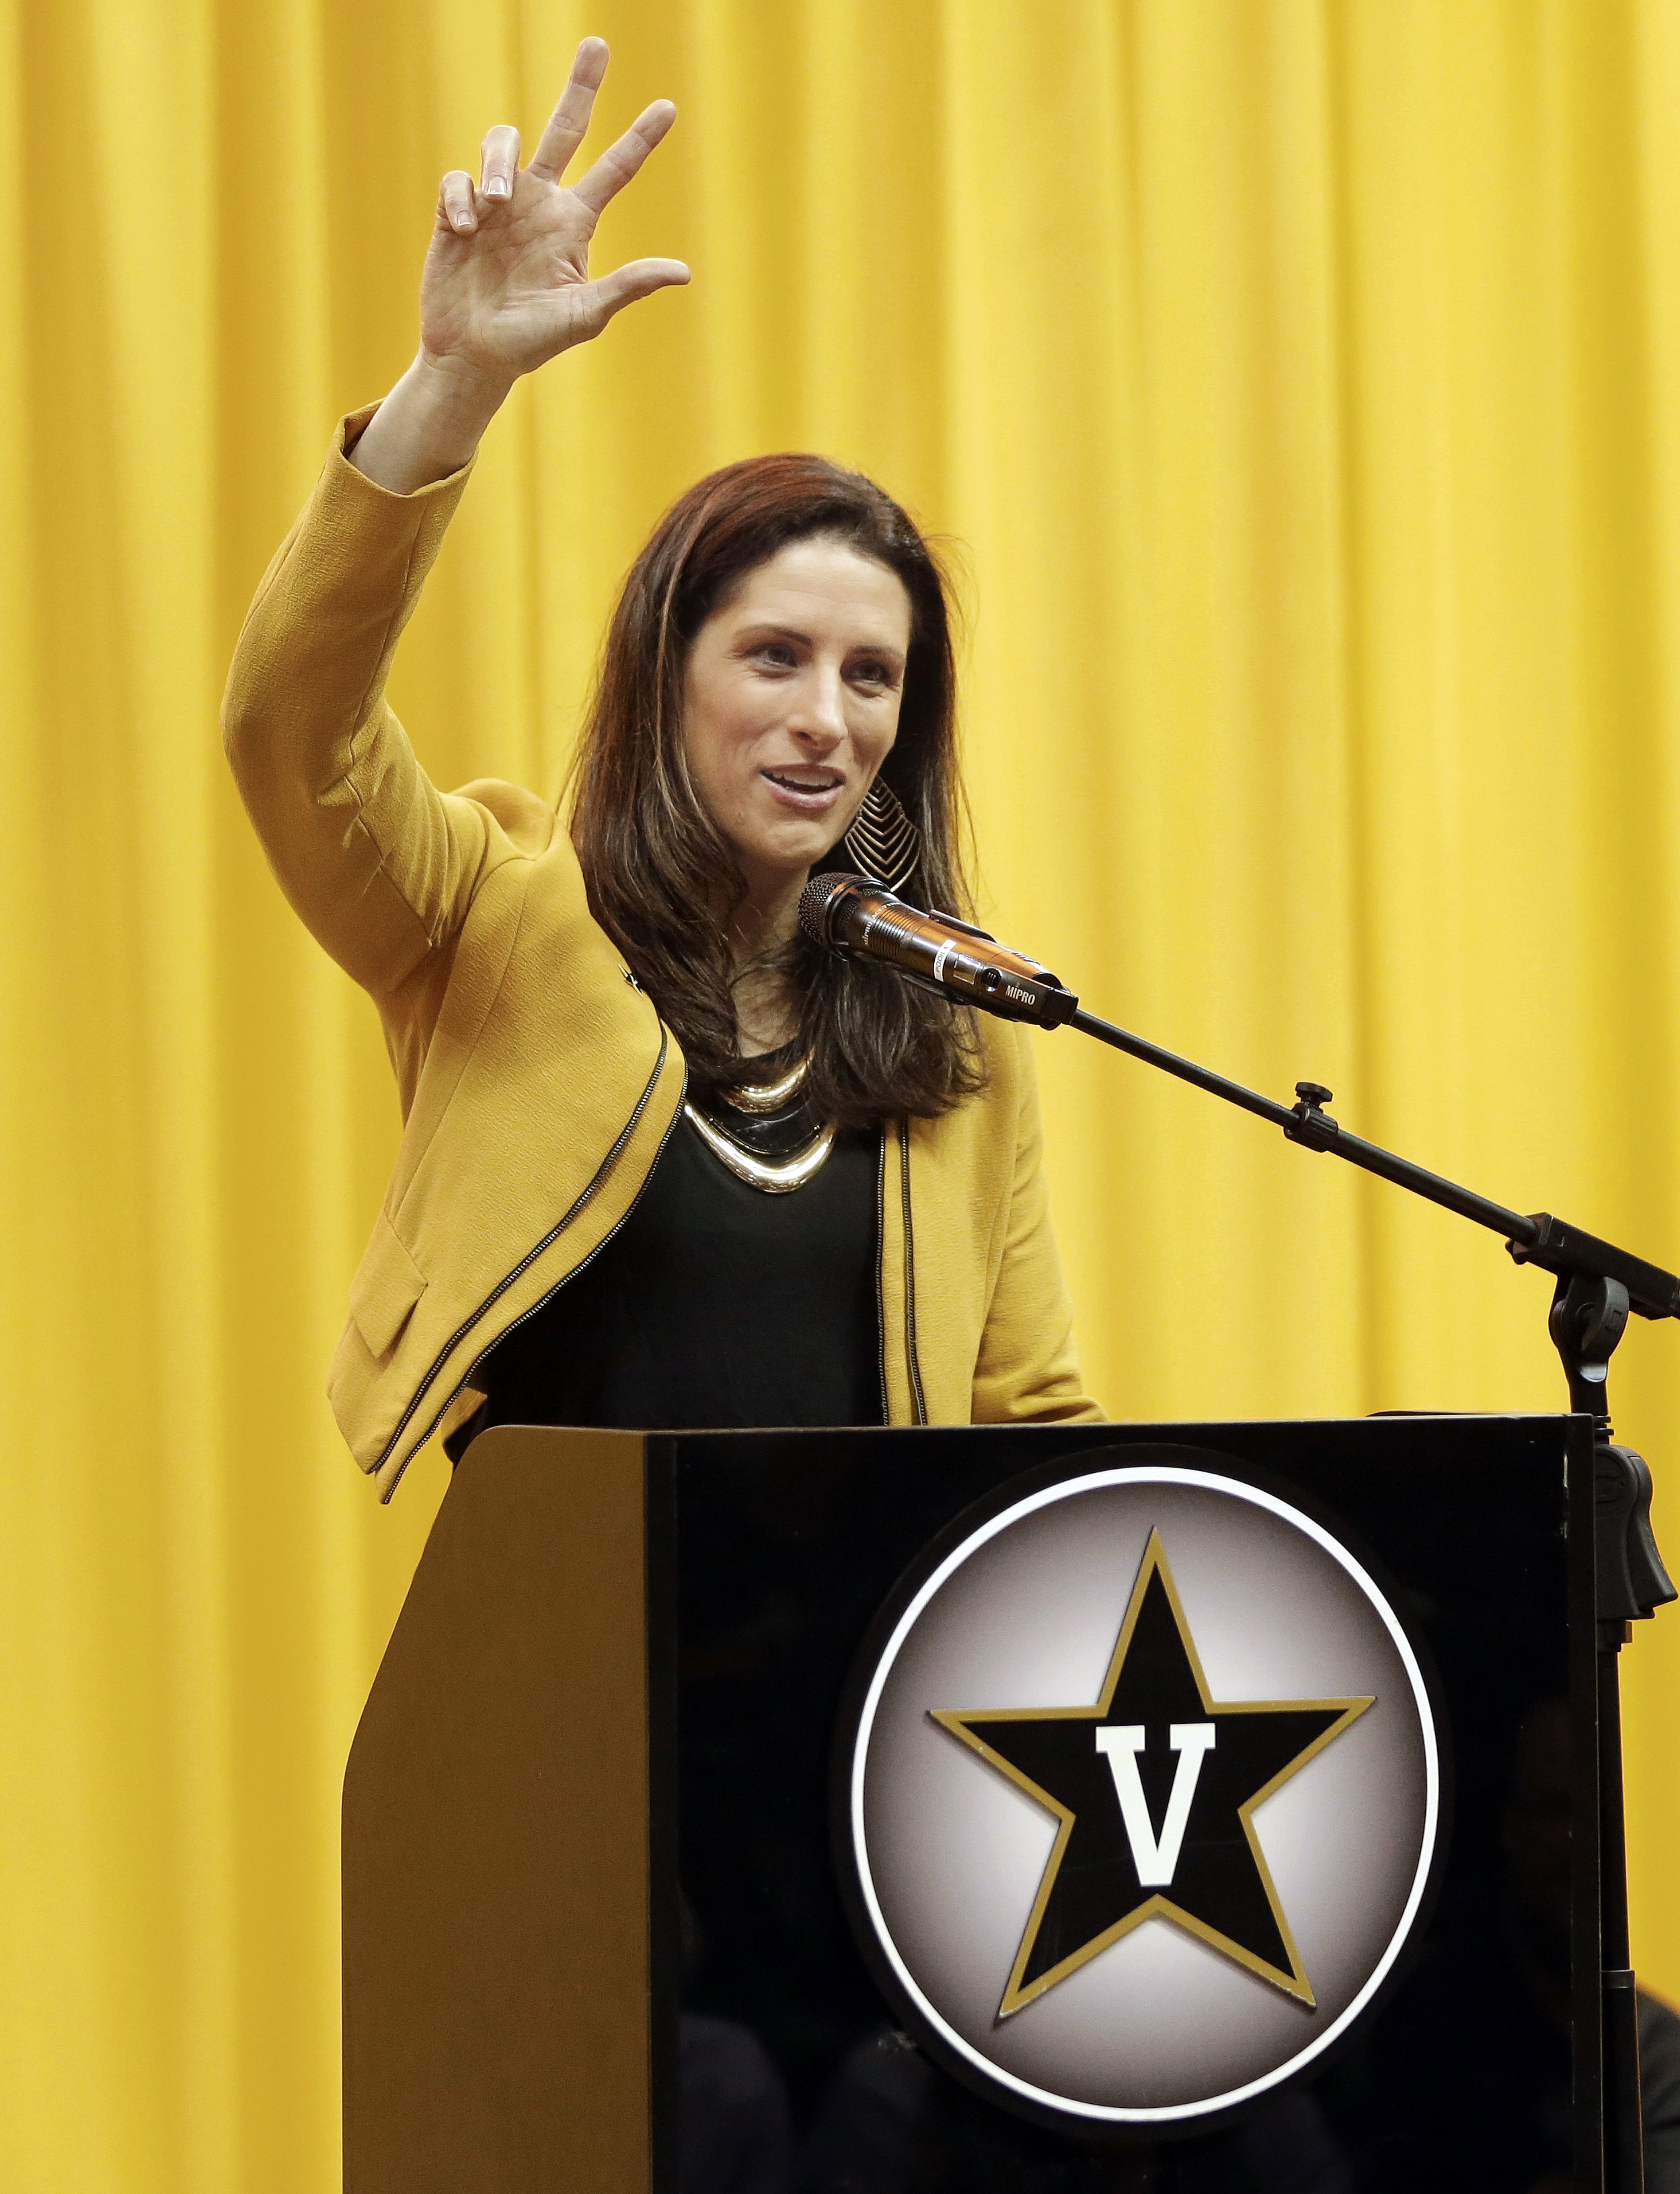 CORRECTS TO WHITE STILL COACHING IN THE WNBA - Stephanie White, head coach of the WNBA's Indiana Fever, gestures during an NCAA college baseball news conference where she was introduced as the new's women's basketball coach at Vanderbilt University, Wedne